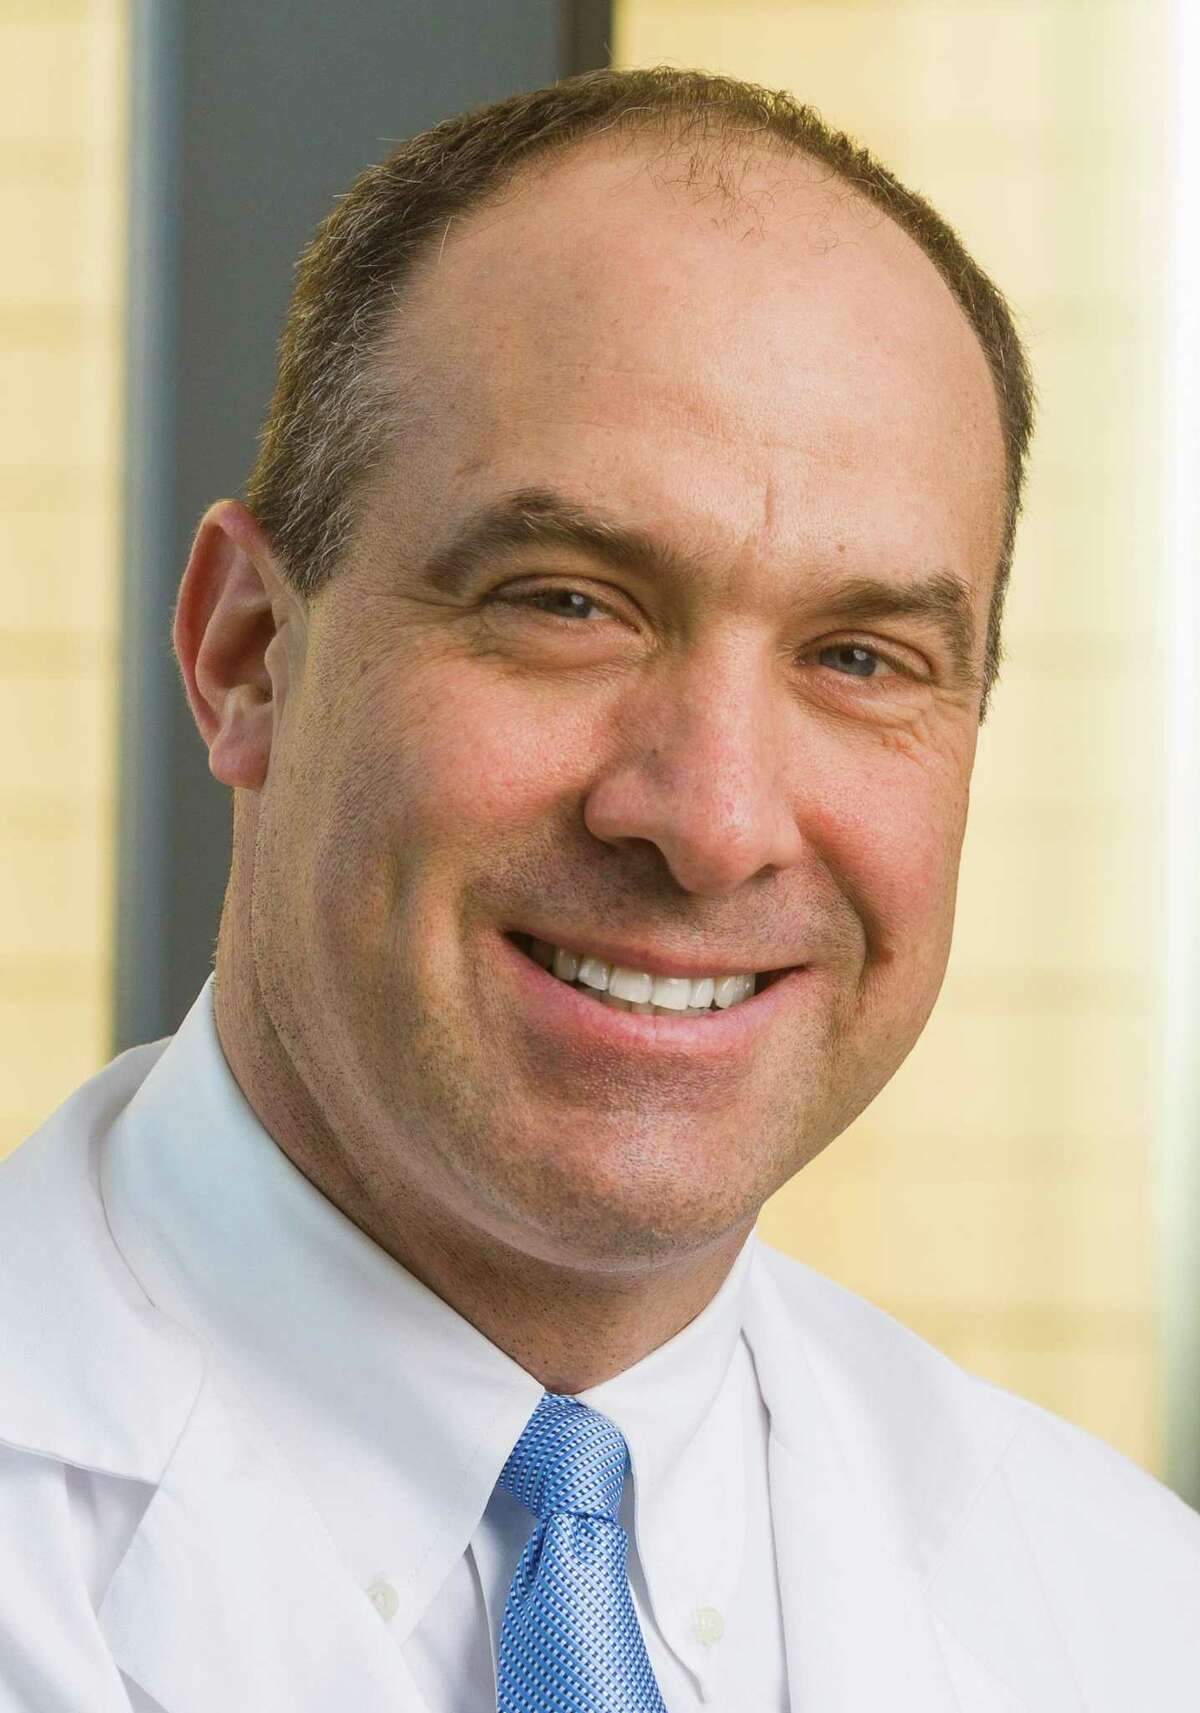 Dr. Thomas Balcezak, chief clinical officer of Yale New Haven Health.